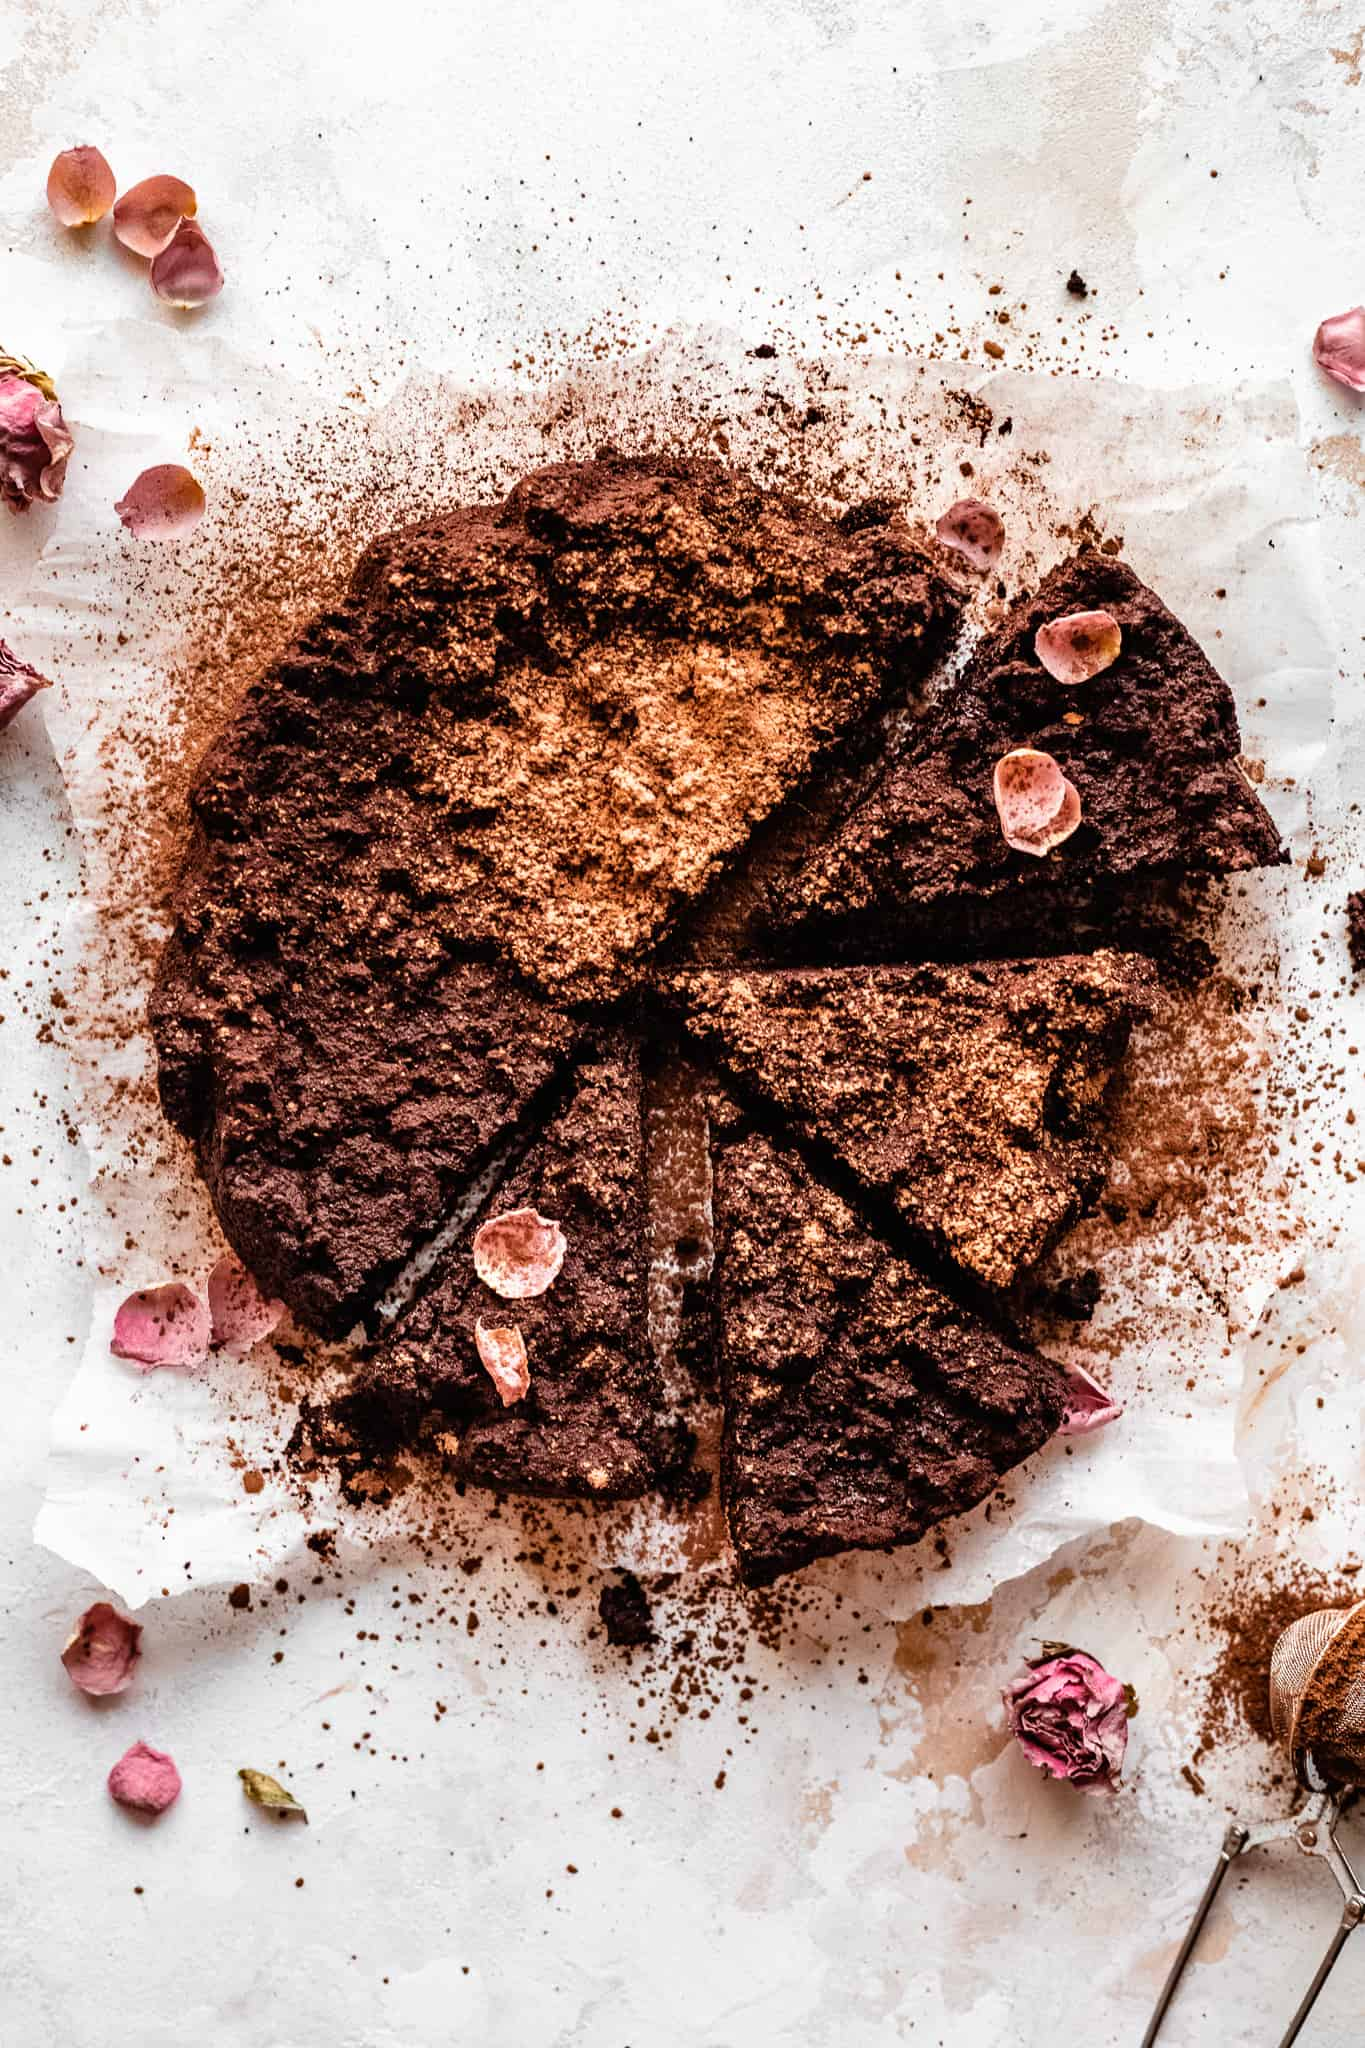 Vegan Flourless Chocolate Cake (Paleo)